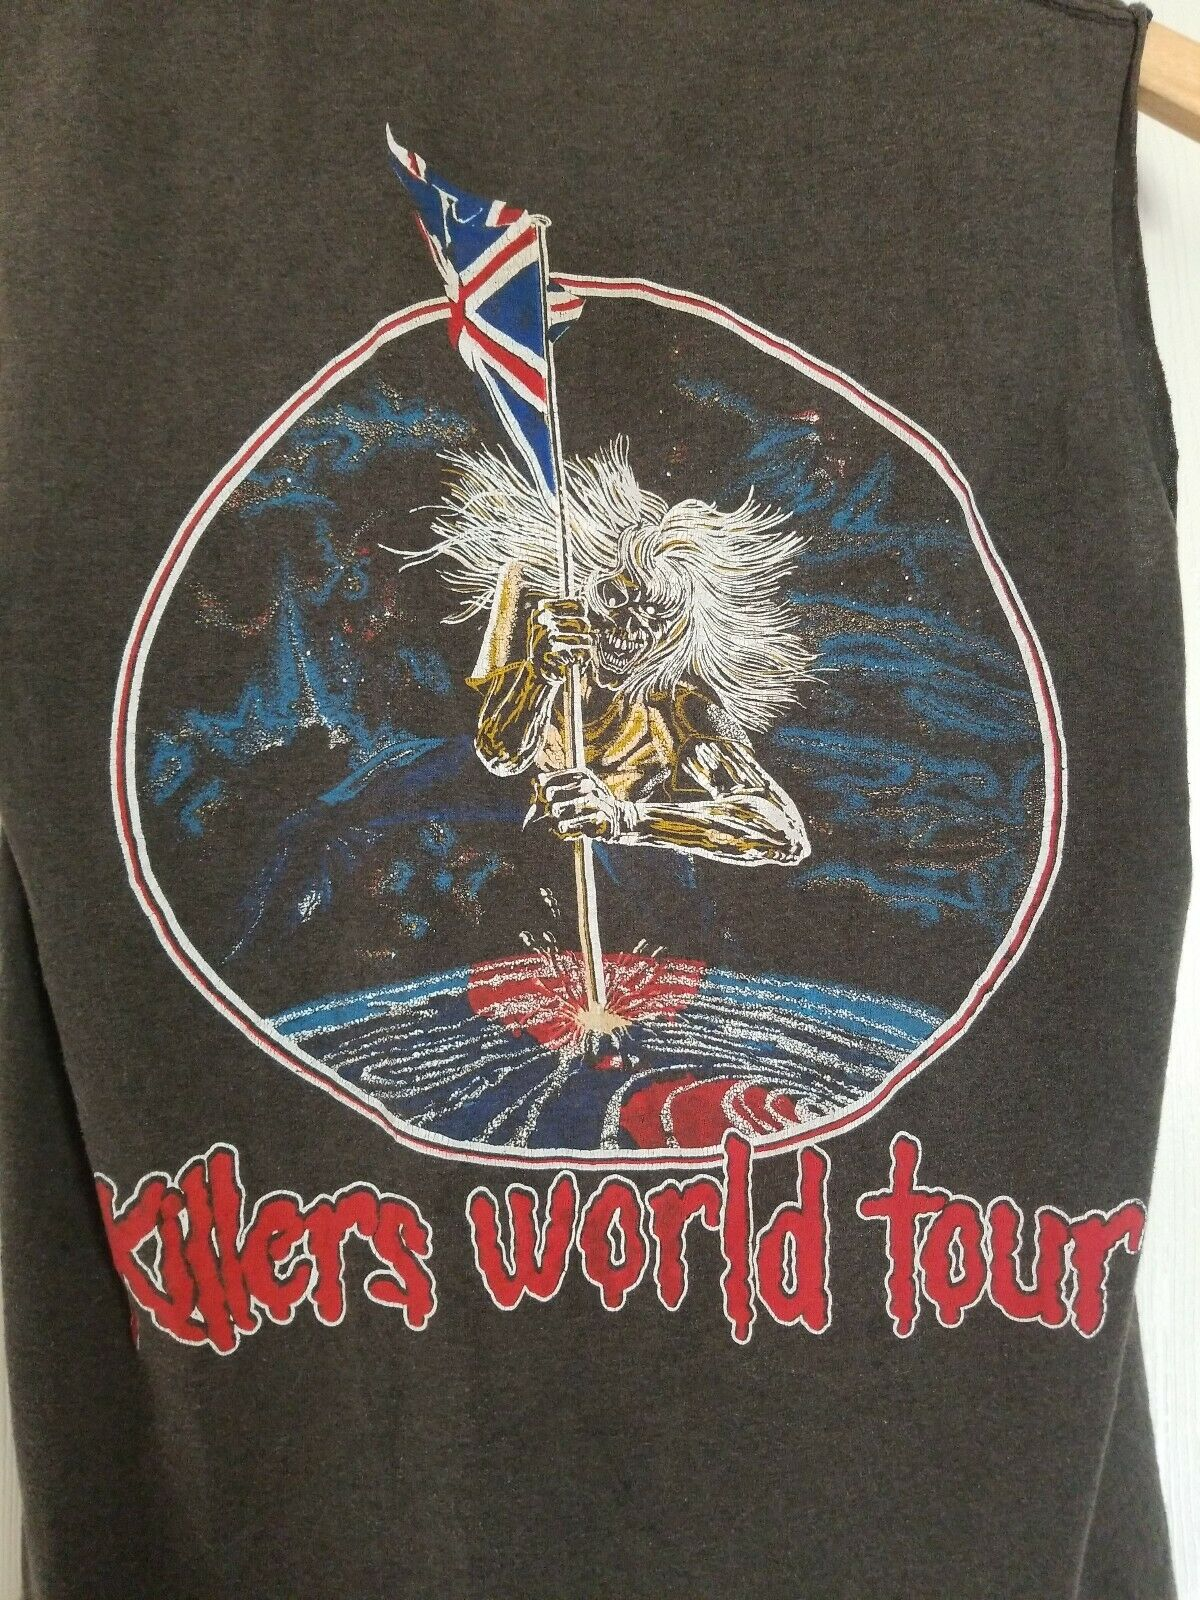 Vintage 80s Iron Maiden Small T-shirt Killers Wor… - image 7